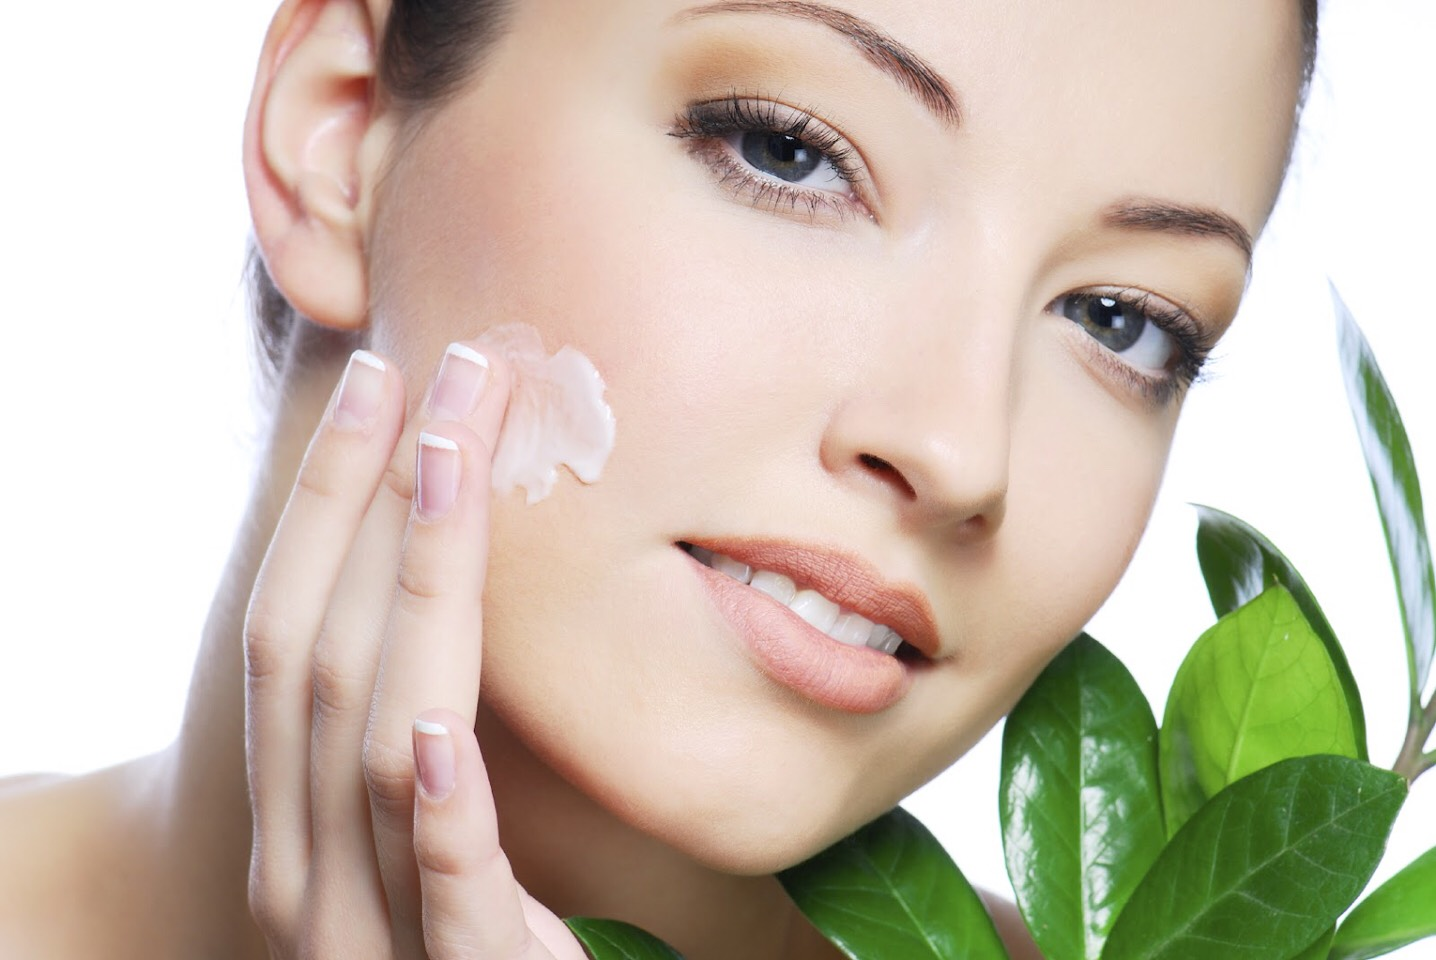 Go in with toner to get rid of excess oil sitting in your face, moisturiser to add in vitamins and proteins into the skin and eye cream to feel hydrated.